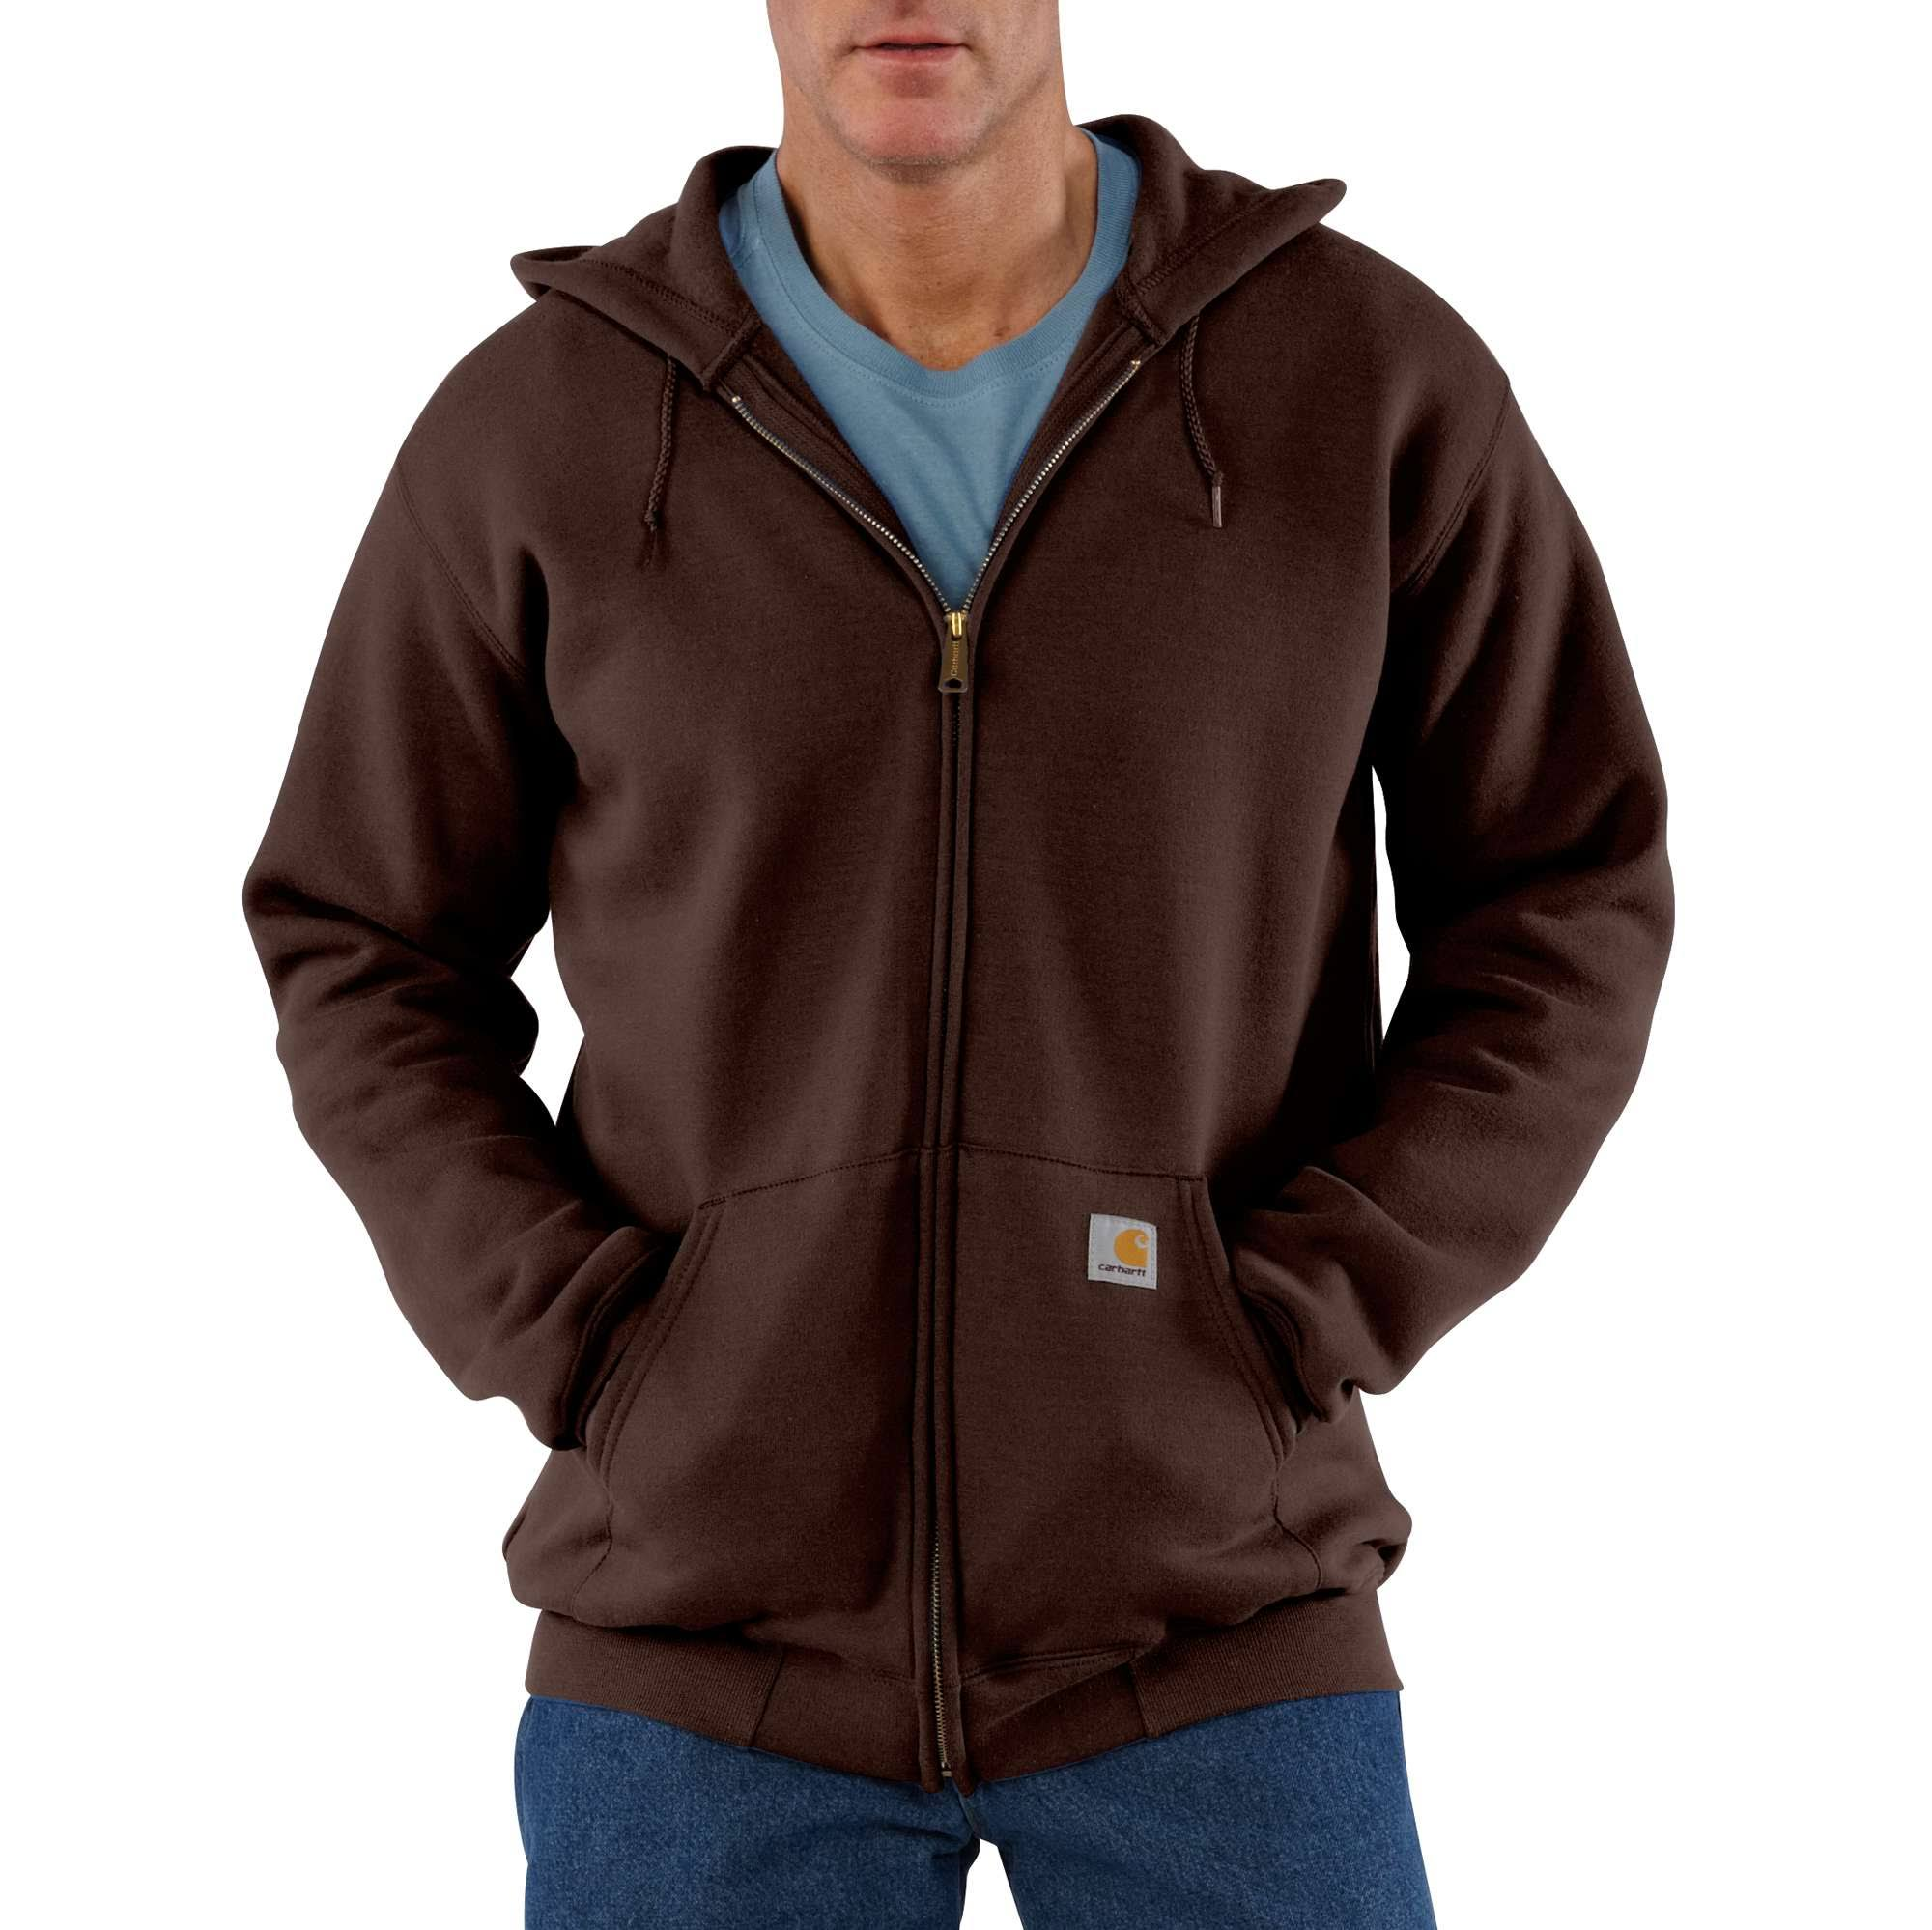 Carhartt Men's Midweight Sweatshirt - Dark Brown, X-Large